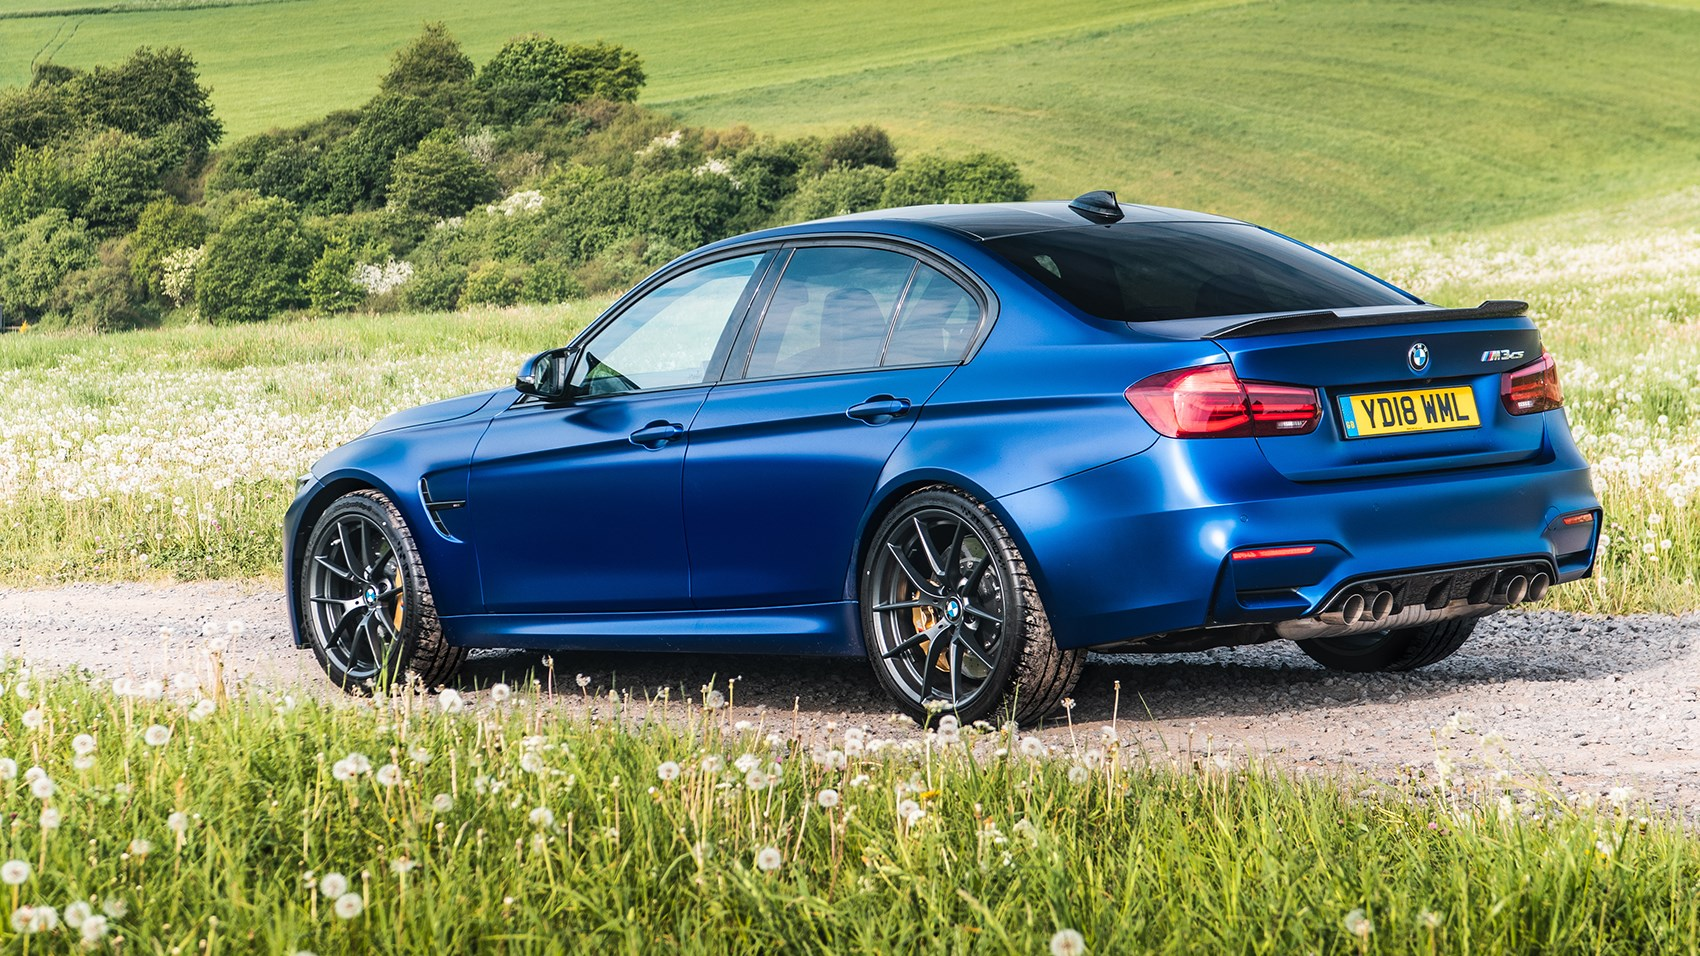 bmw m3 cs 2018 review the best f80 m3 yet car magazine. Black Bedroom Furniture Sets. Home Design Ideas